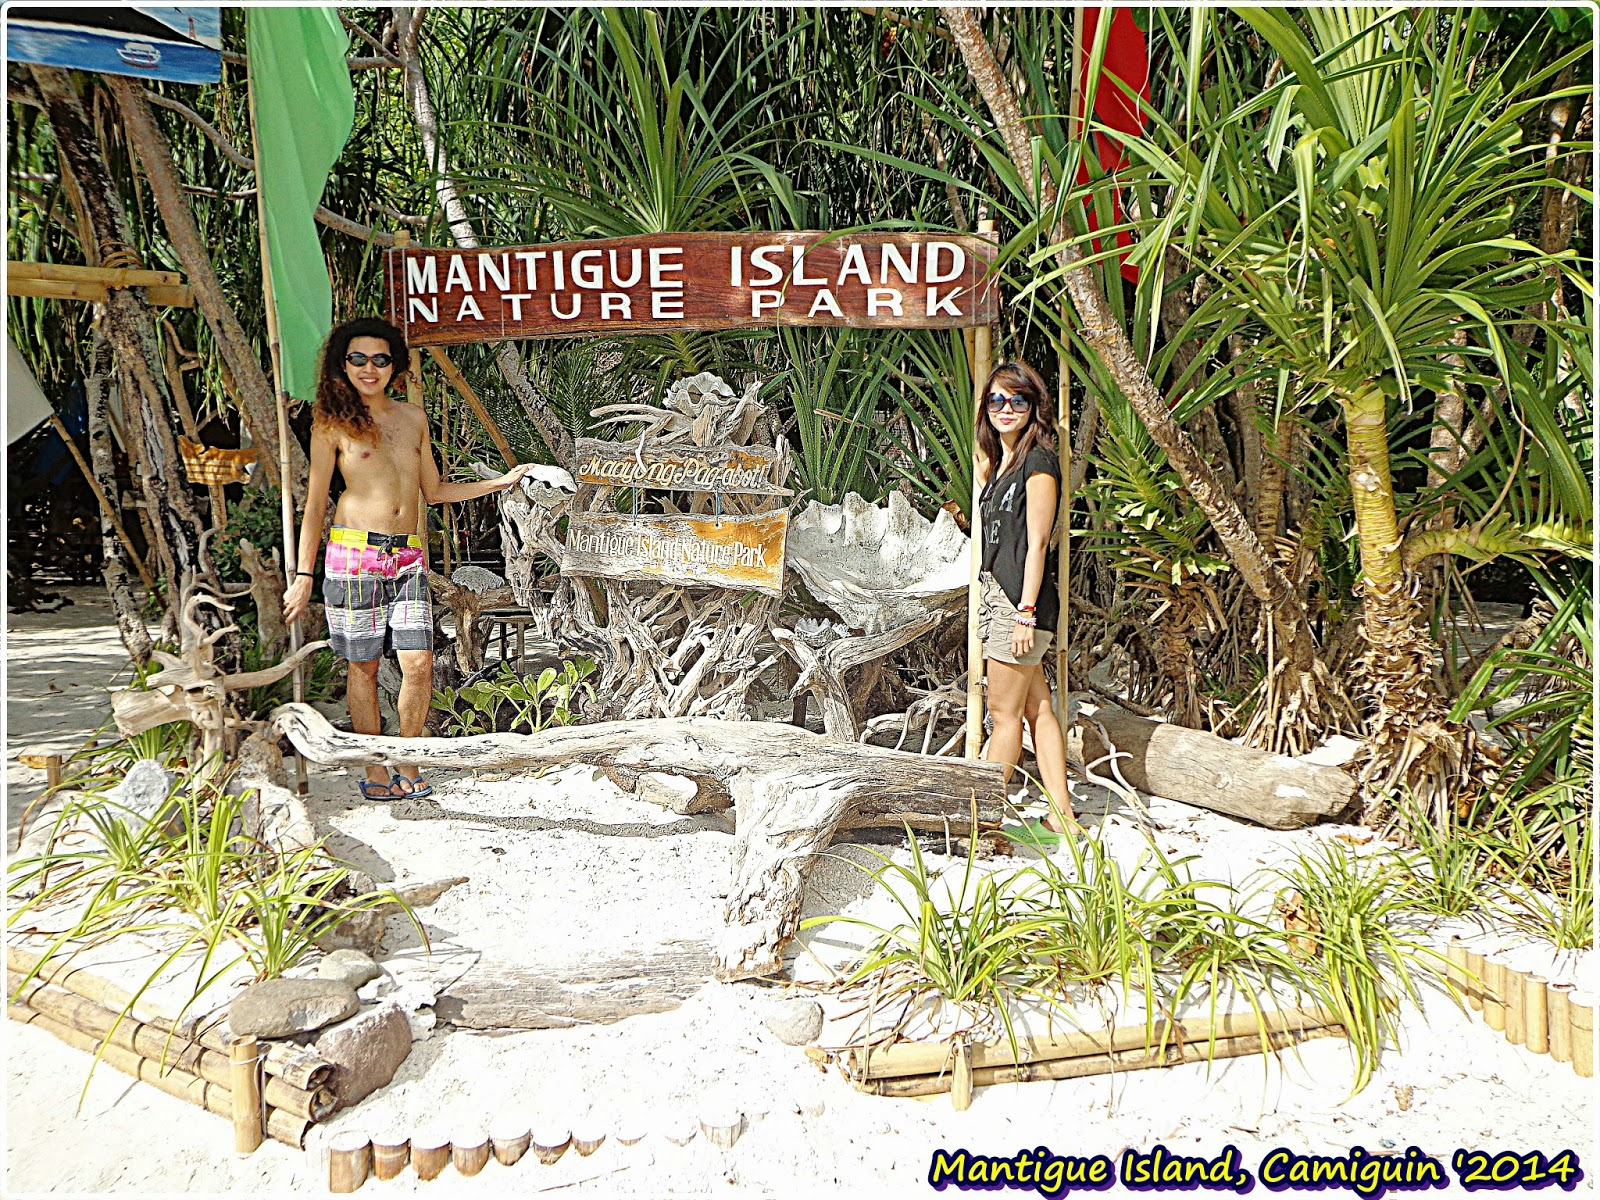 Mantigue Island, Camiguin